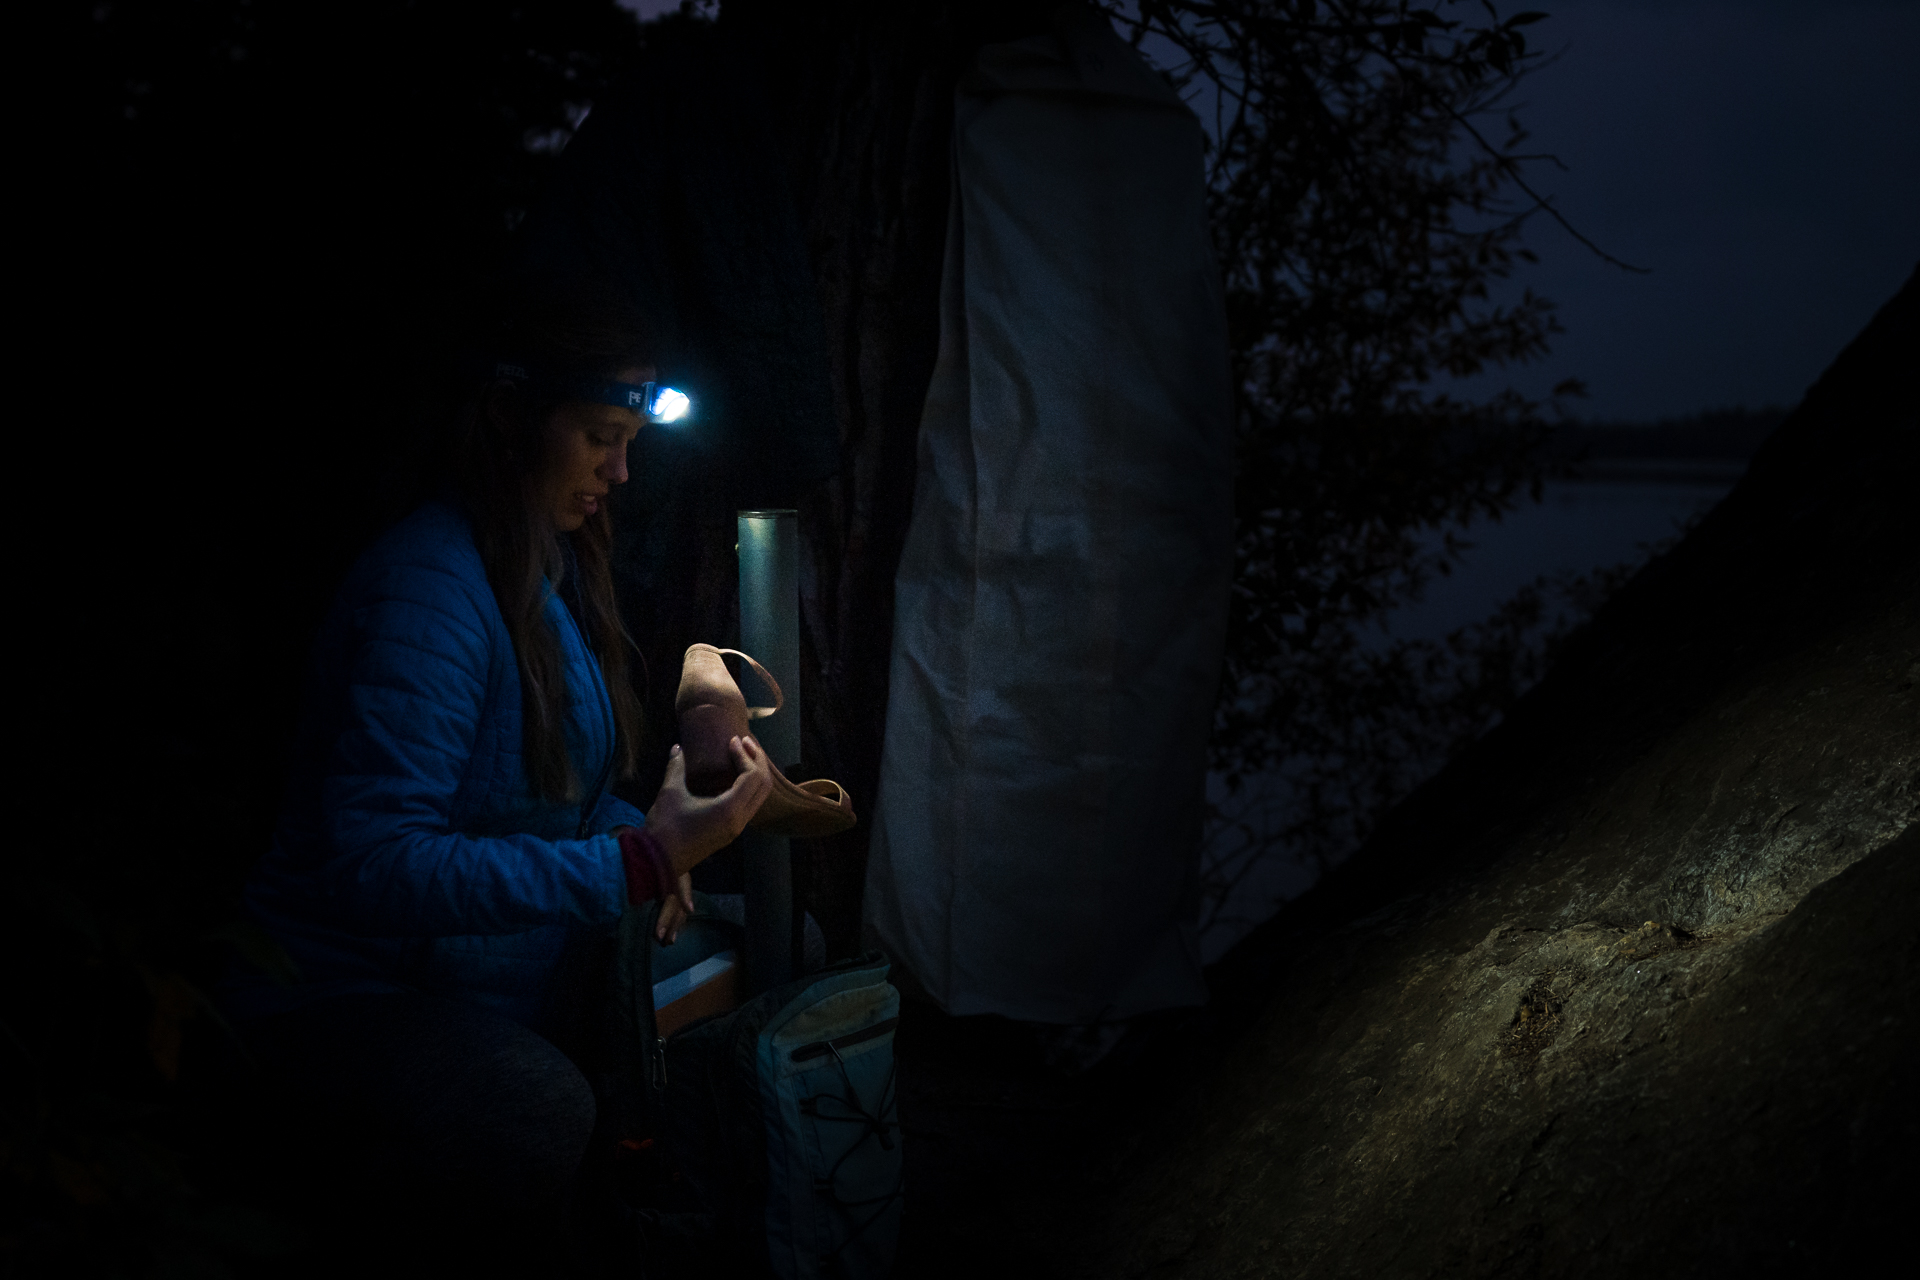 Elopement Photos in Grand Teton National Park | The bride starting to unpack her wedding dress in the dark